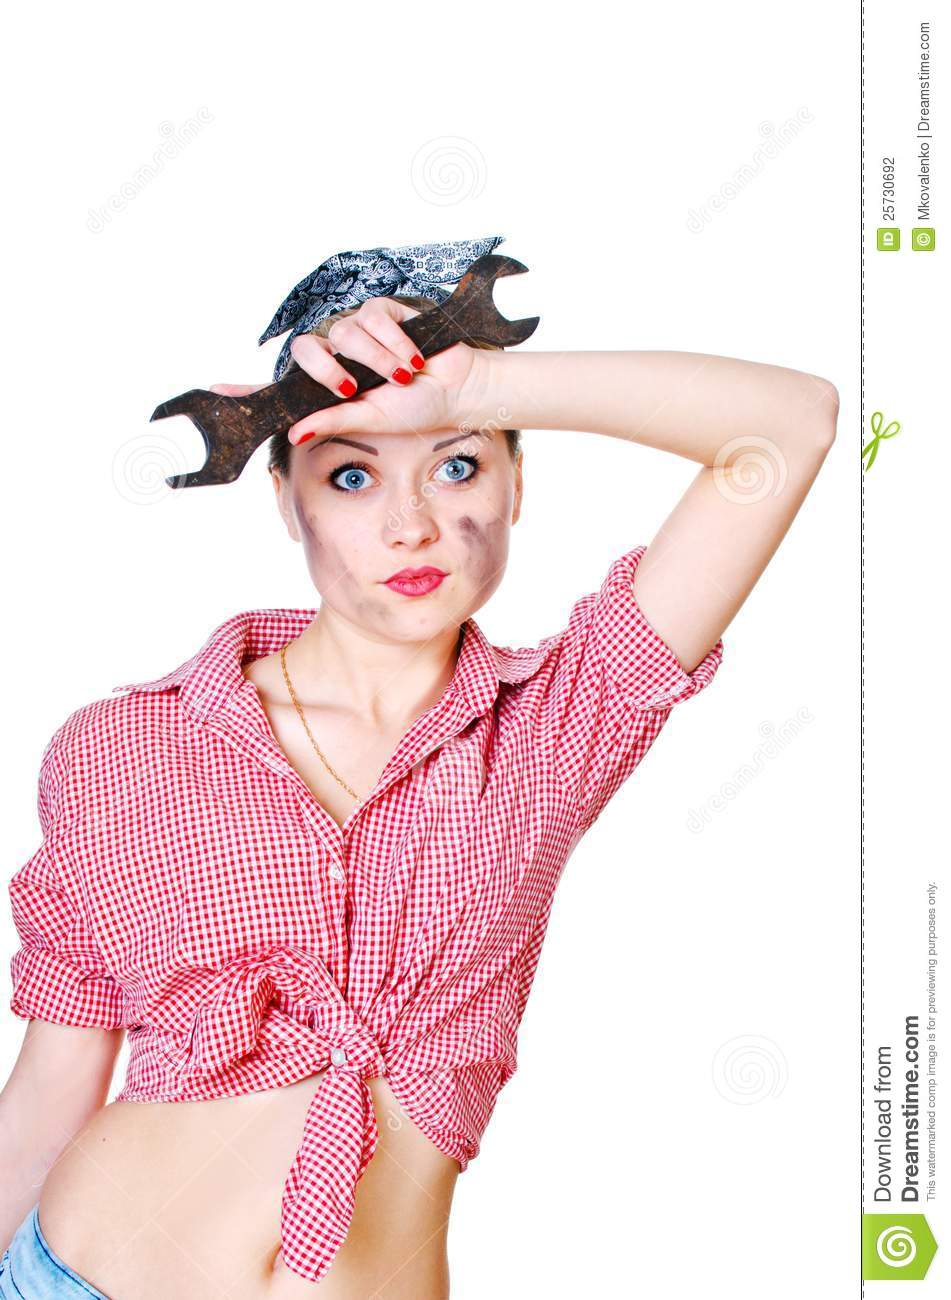 Girl with spanner wiping her brow